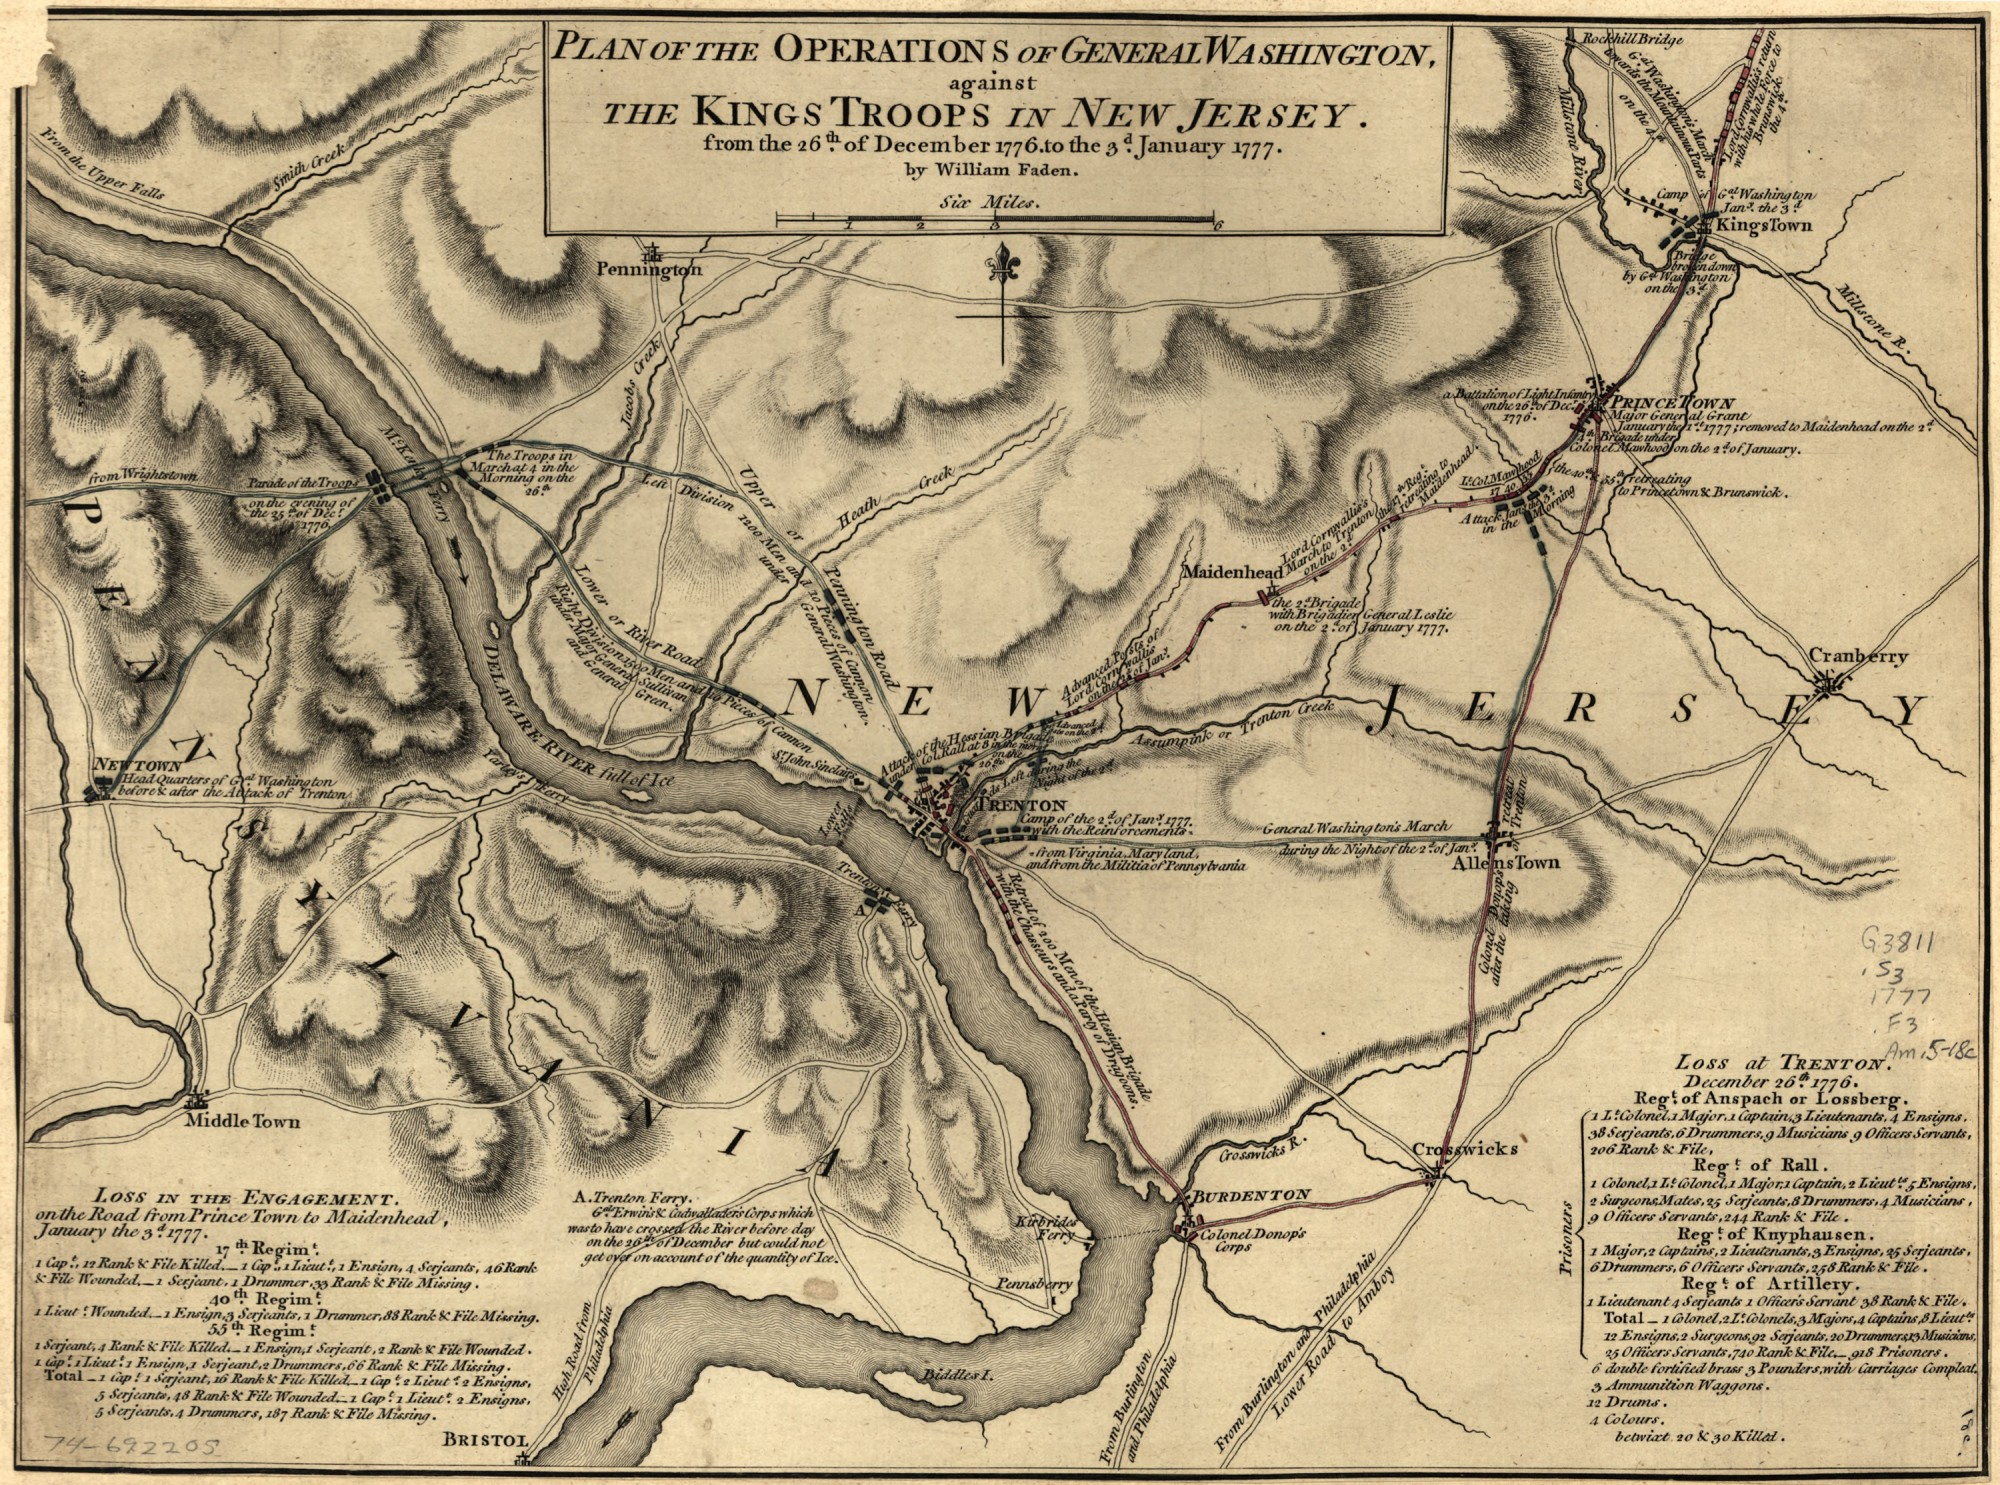 battle of trenton essay The battle of trenton the battle of trenton was a turning point for george washington and his men in the continental army, having suffered defeat by british forces in the battle for long island, where they lost new york.